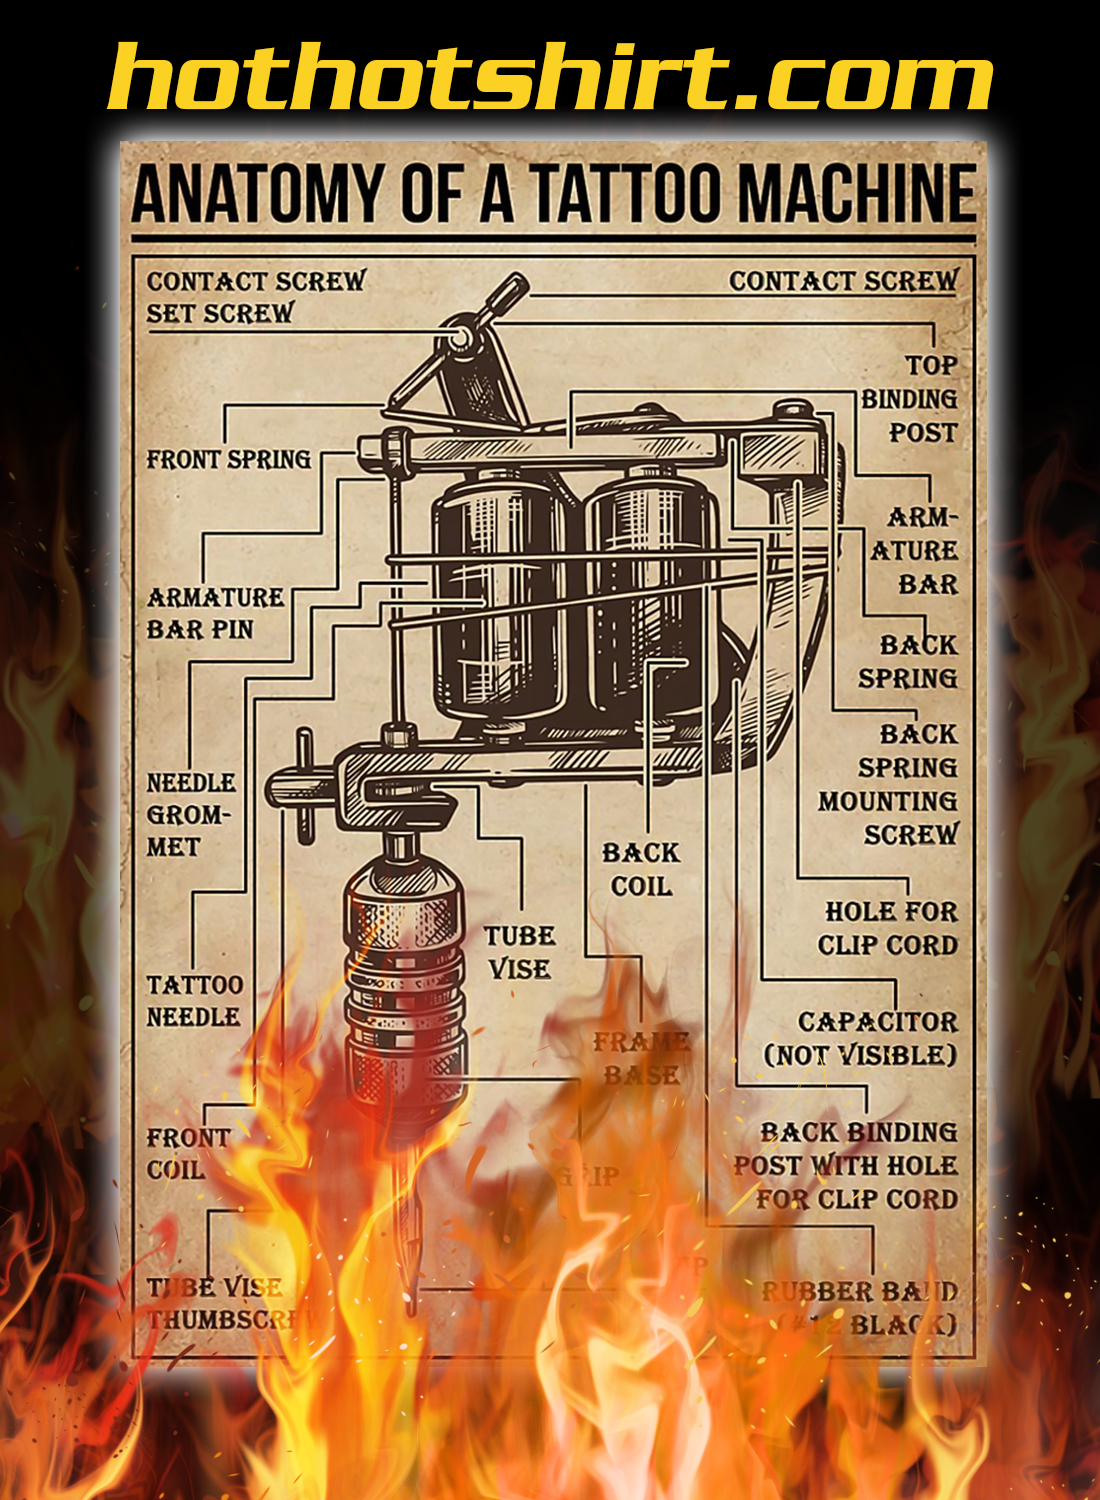 Anatomy Of A Tattoo Machine Poster - A2